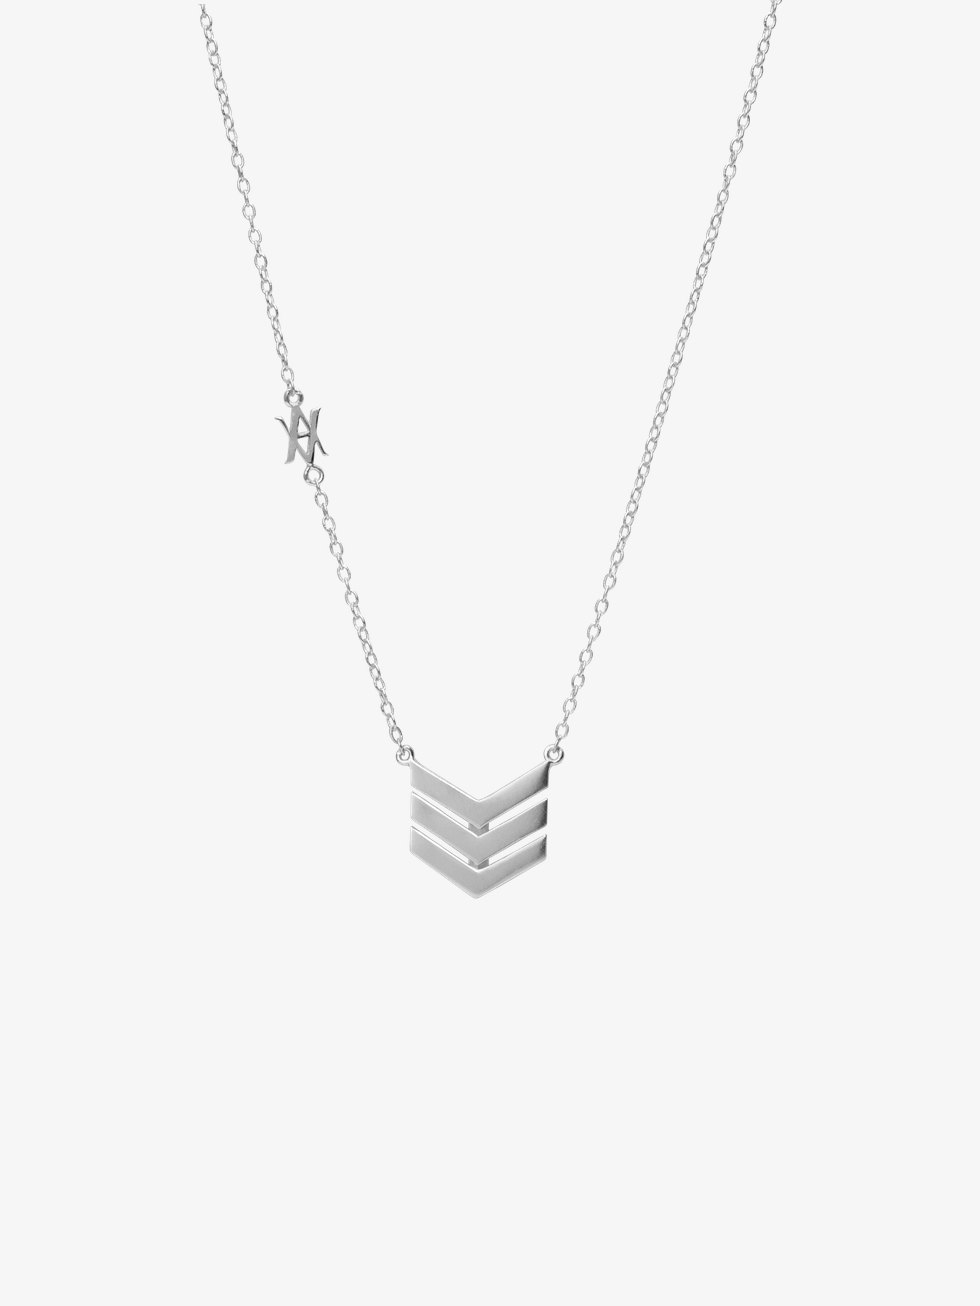 TIRS silver necklace